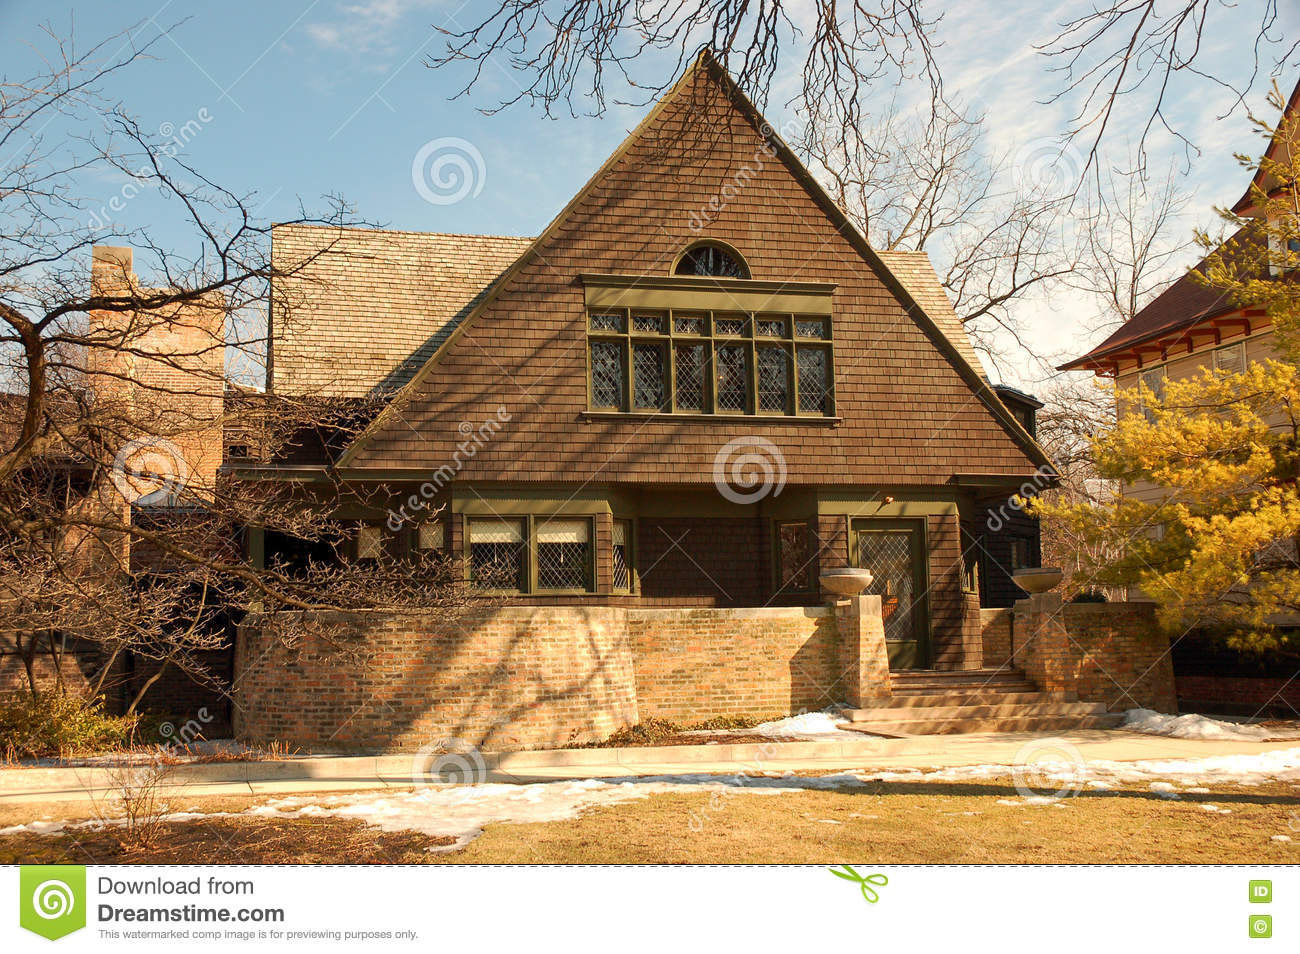 Frank lloyd wrights home in oak park illinois editorial for Franks homes